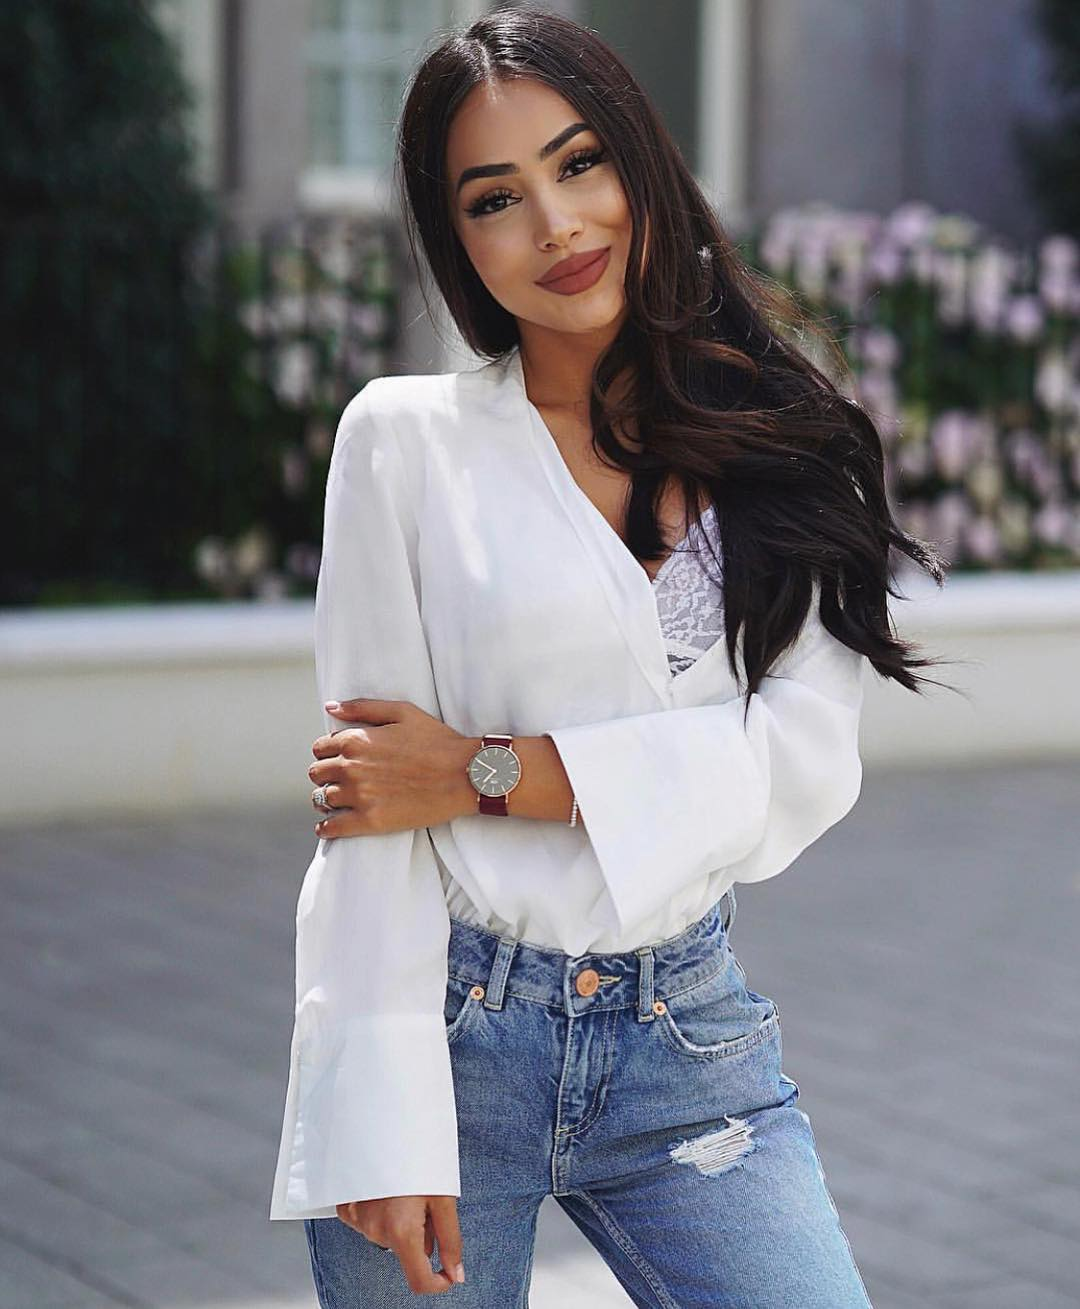 Bell Sleeve Shirt In White And High Waisted Jeans For Spring 2020